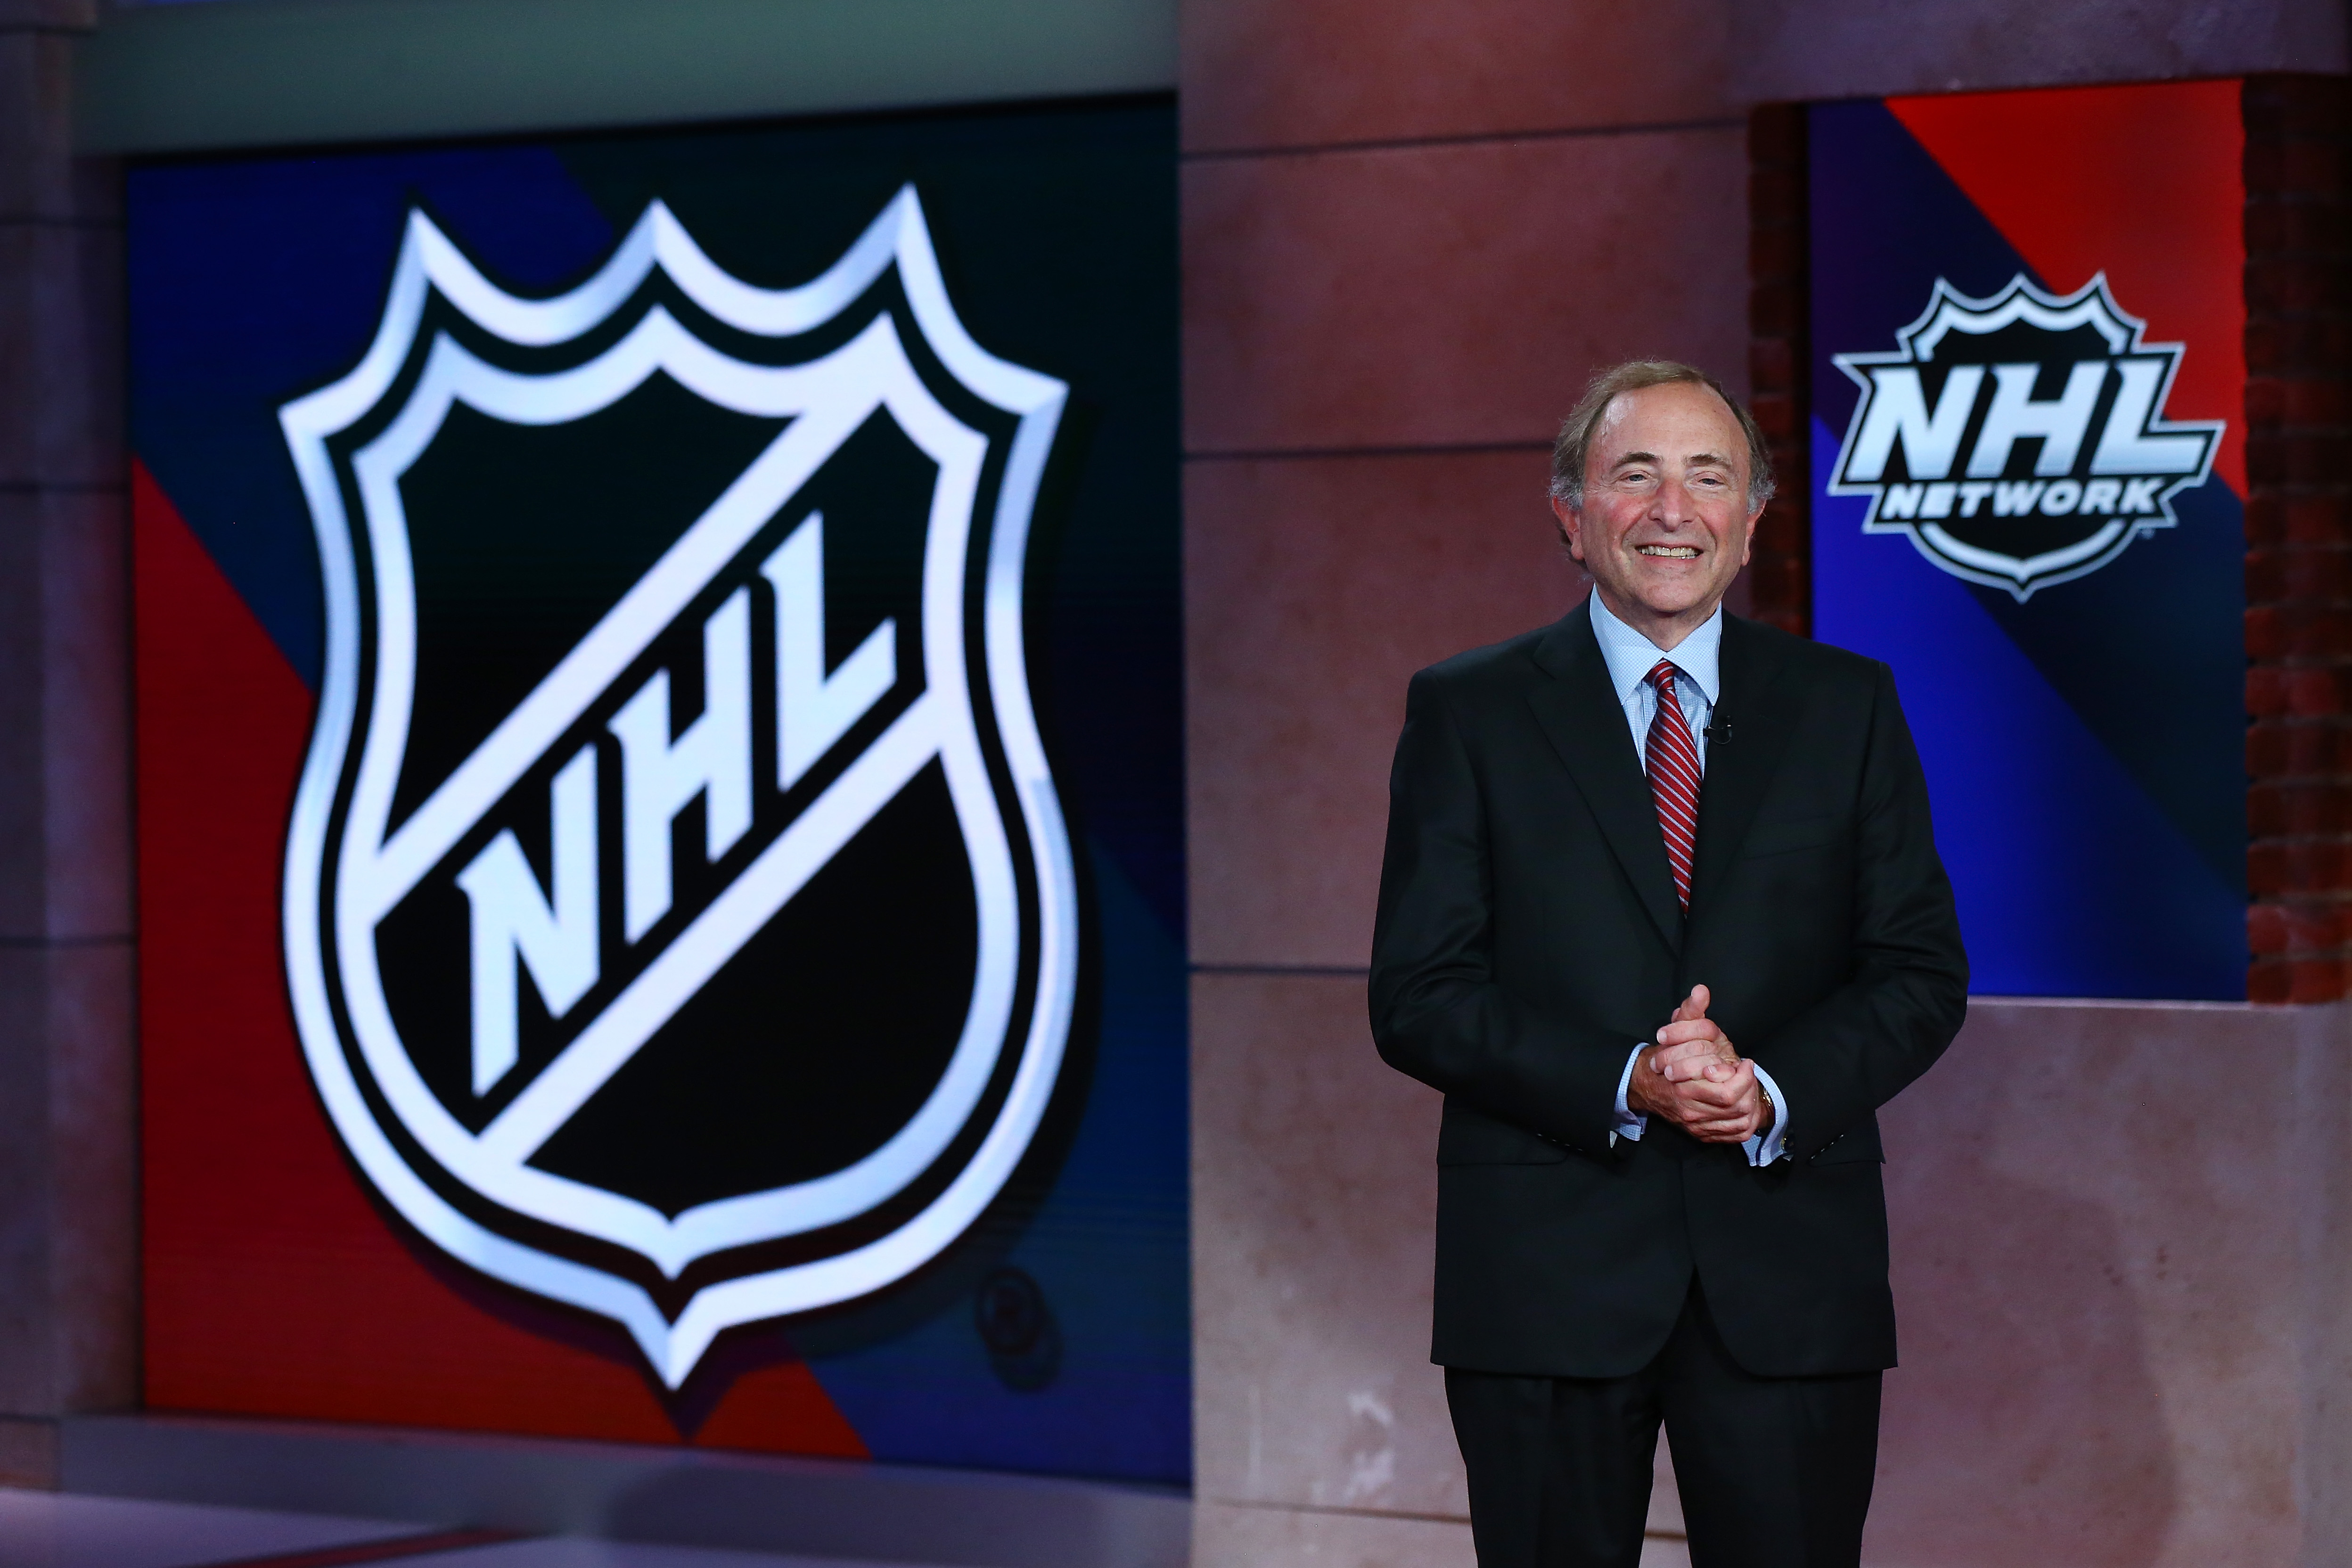 SECAUCUS, NEW JERSEY - AUGUST 10: Commissioner of the National Hockey League Gary Bettman is interviewed during Phase 2 of the 2020 NHL Draft Lottery on August 10, 2020 at the NHL Network's studio in Secaucus, New Jersey.